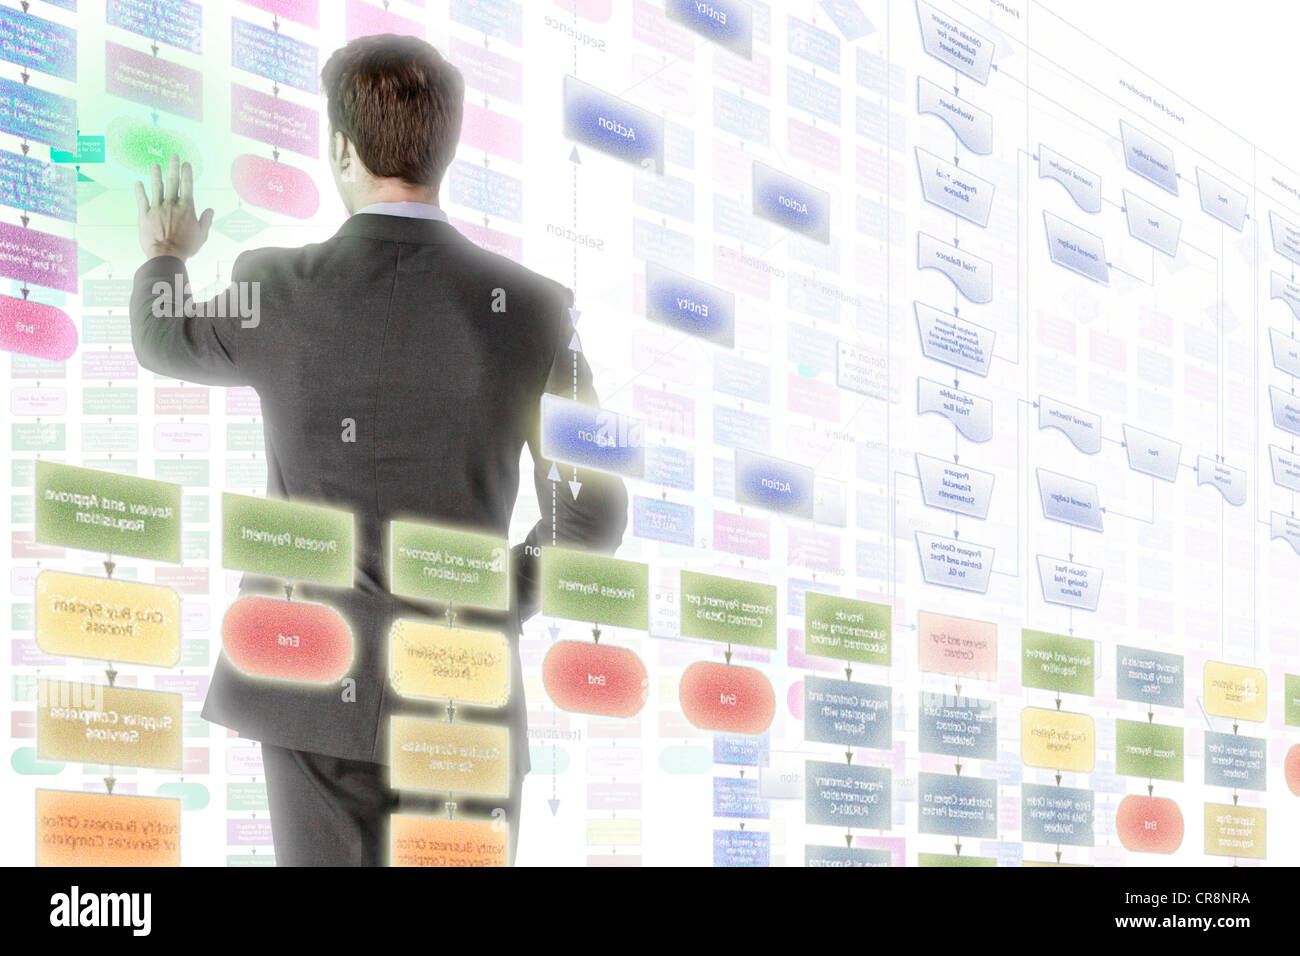 Businessman interacting with holographic screens - Stock Image